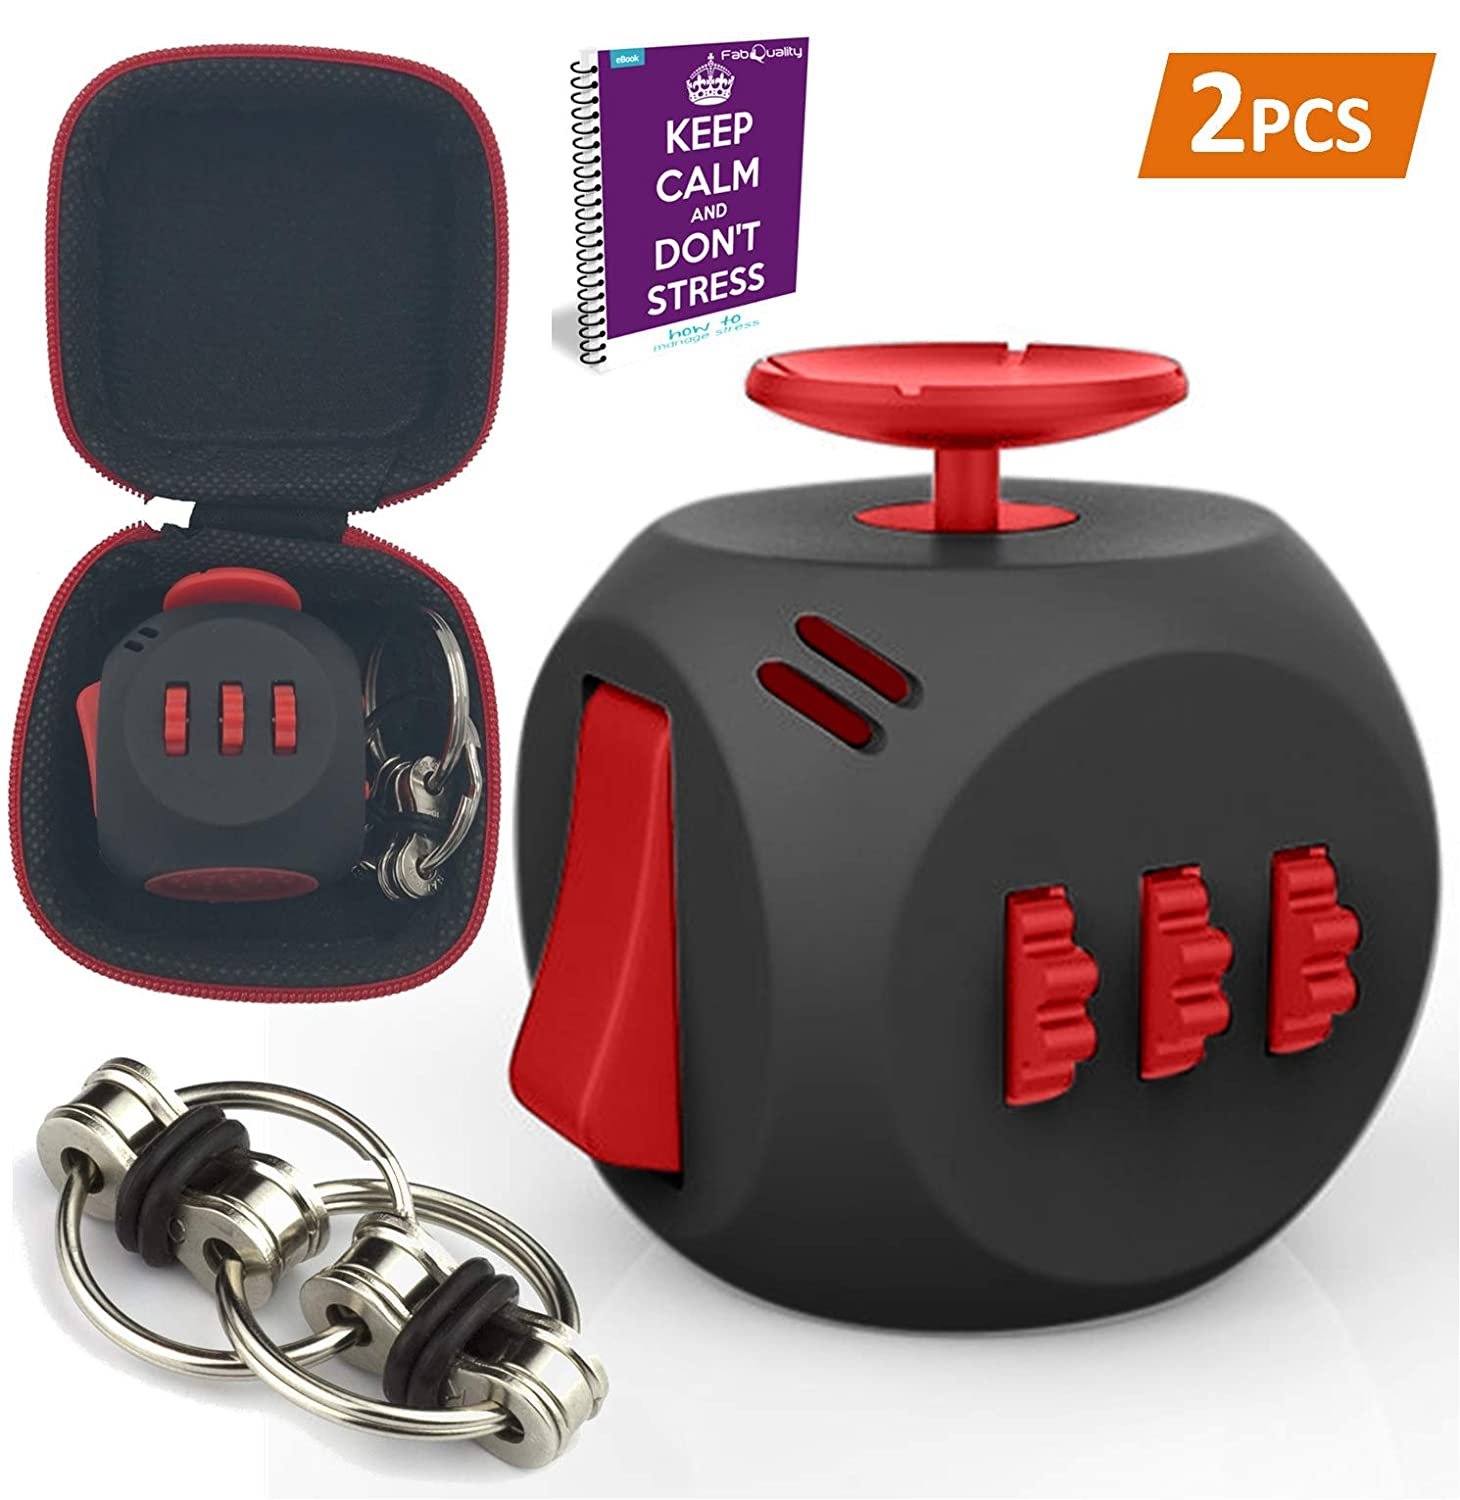 fabquality Fidget Toys + Steel Flipping Chain - Premium Quality Fidget Cube Ball with Exclusive Protective Case, Stress Relief Toy (Black & Red)